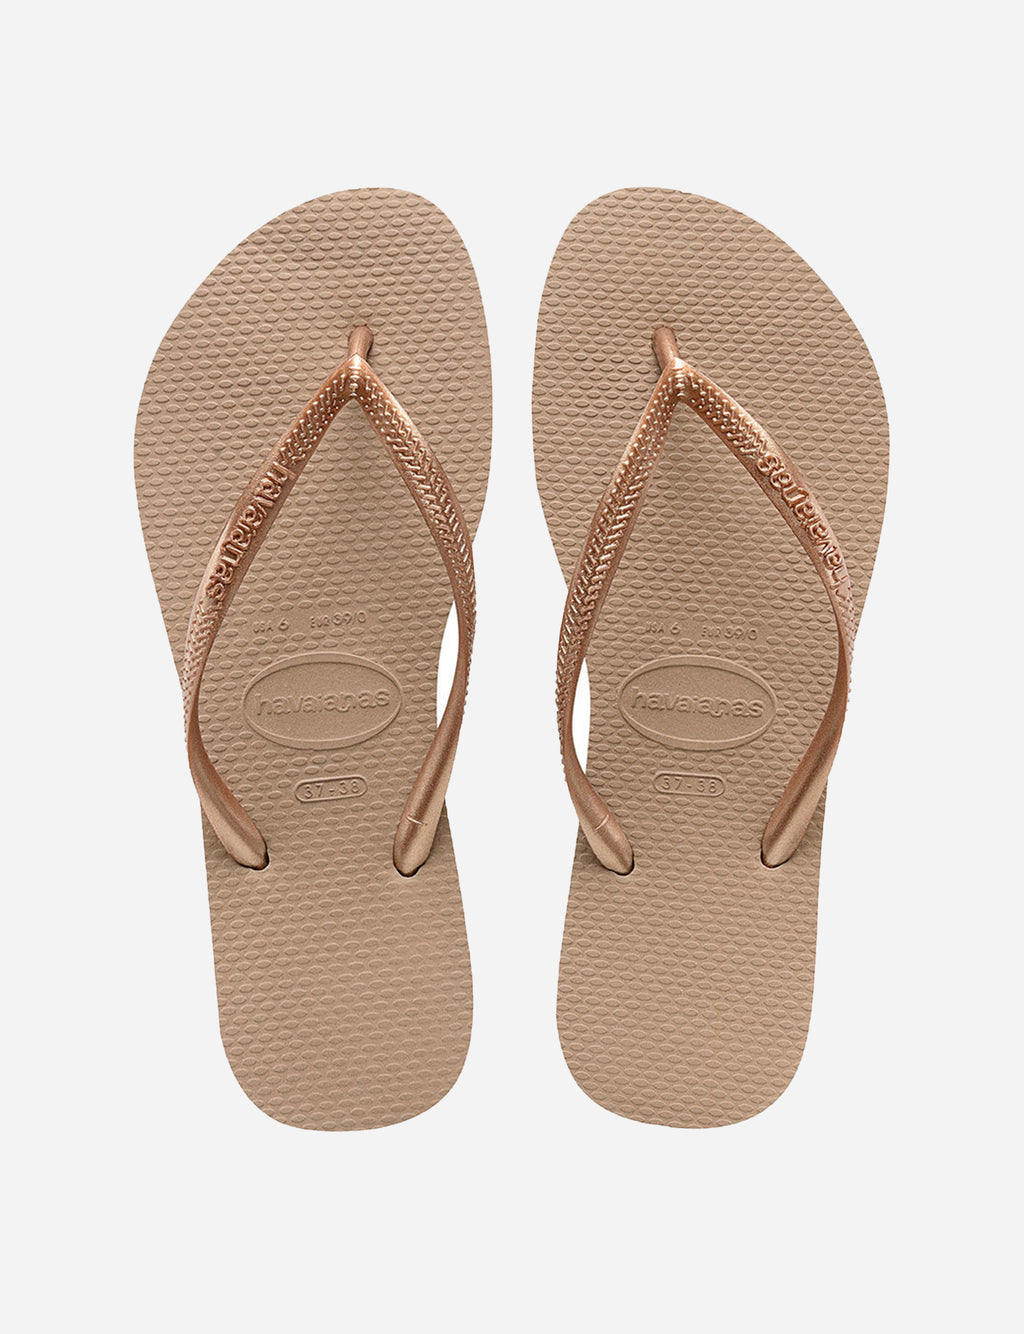 Havaianas Slim Sandal in Rose Gold